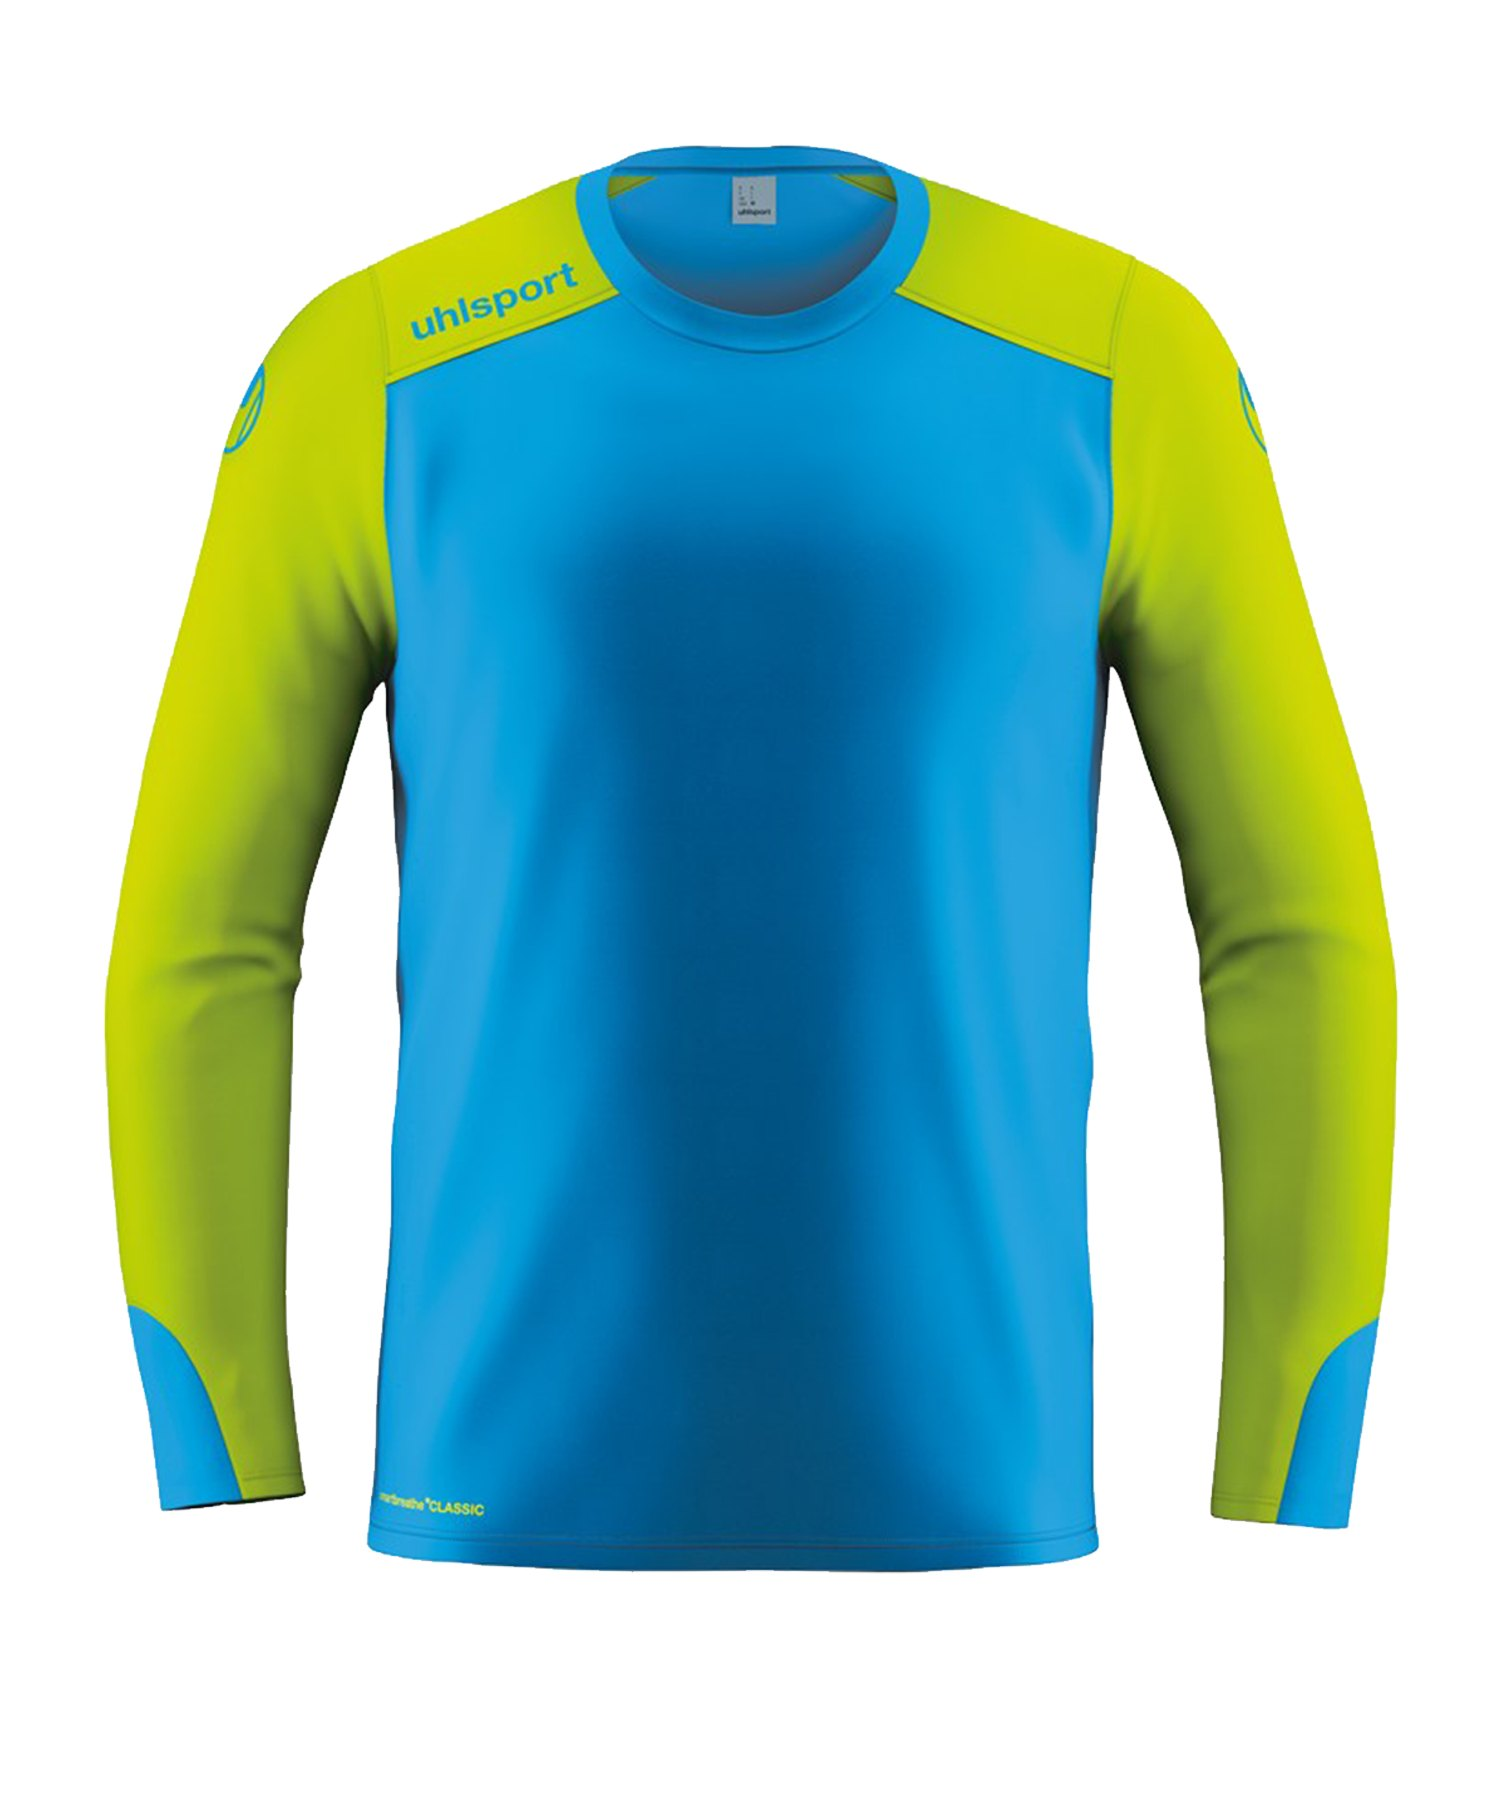 Uhlsport Tower Torwarttrikot langarm Blau F08 - Blau